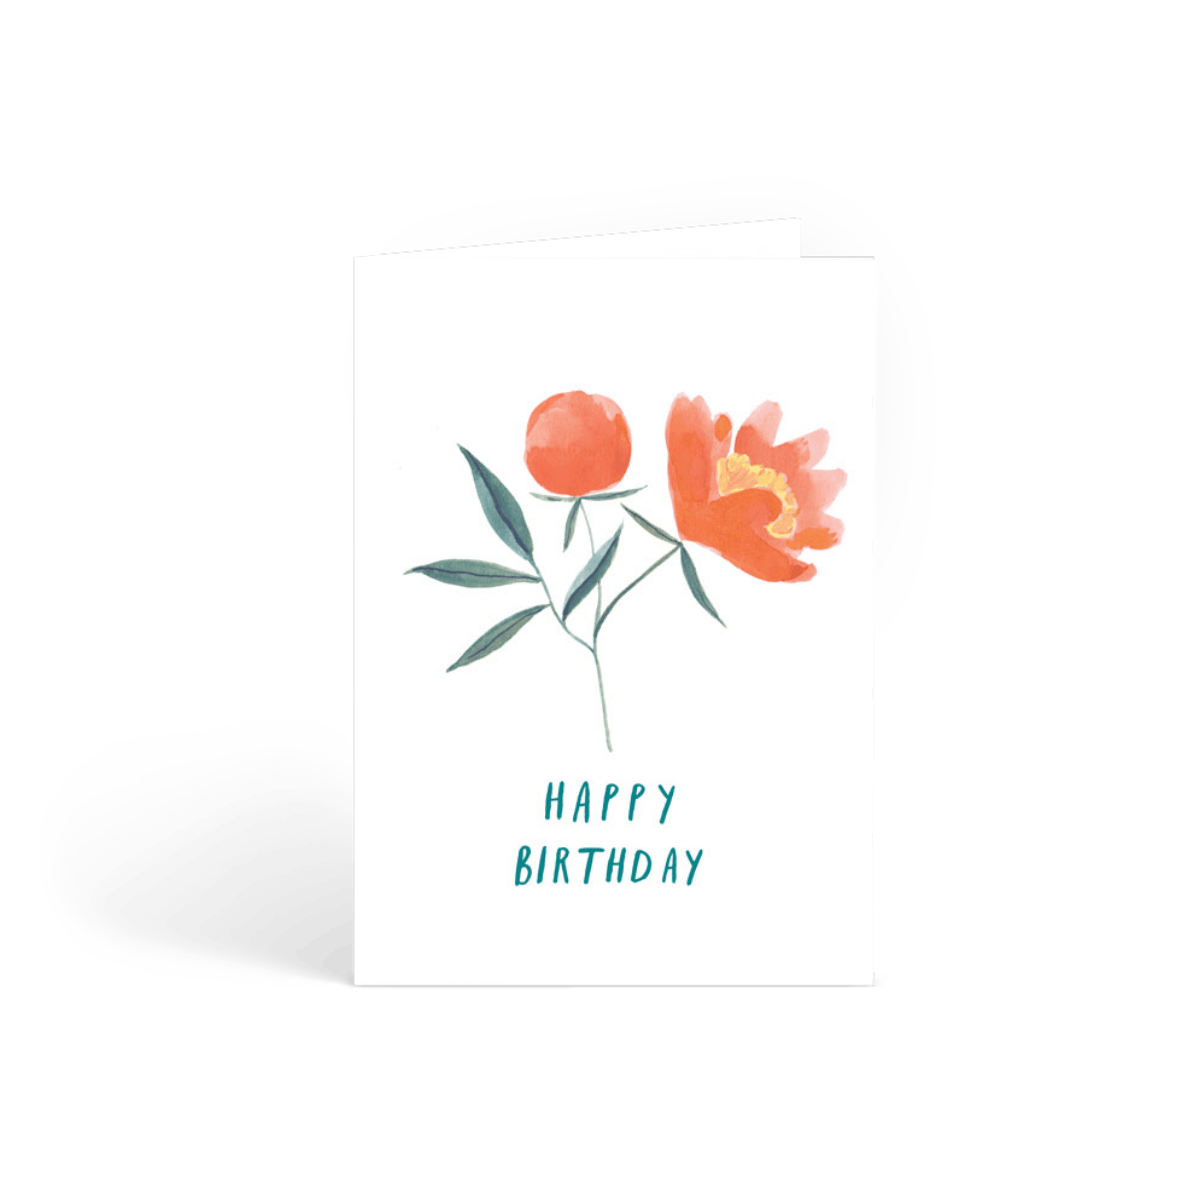 Https%3a%2f%2fwww.papier.com%2fproduct image%2f49714%2f2%2fbirthday peony 12184 vorderseite 1542379532.png?ixlib=rb 1.1